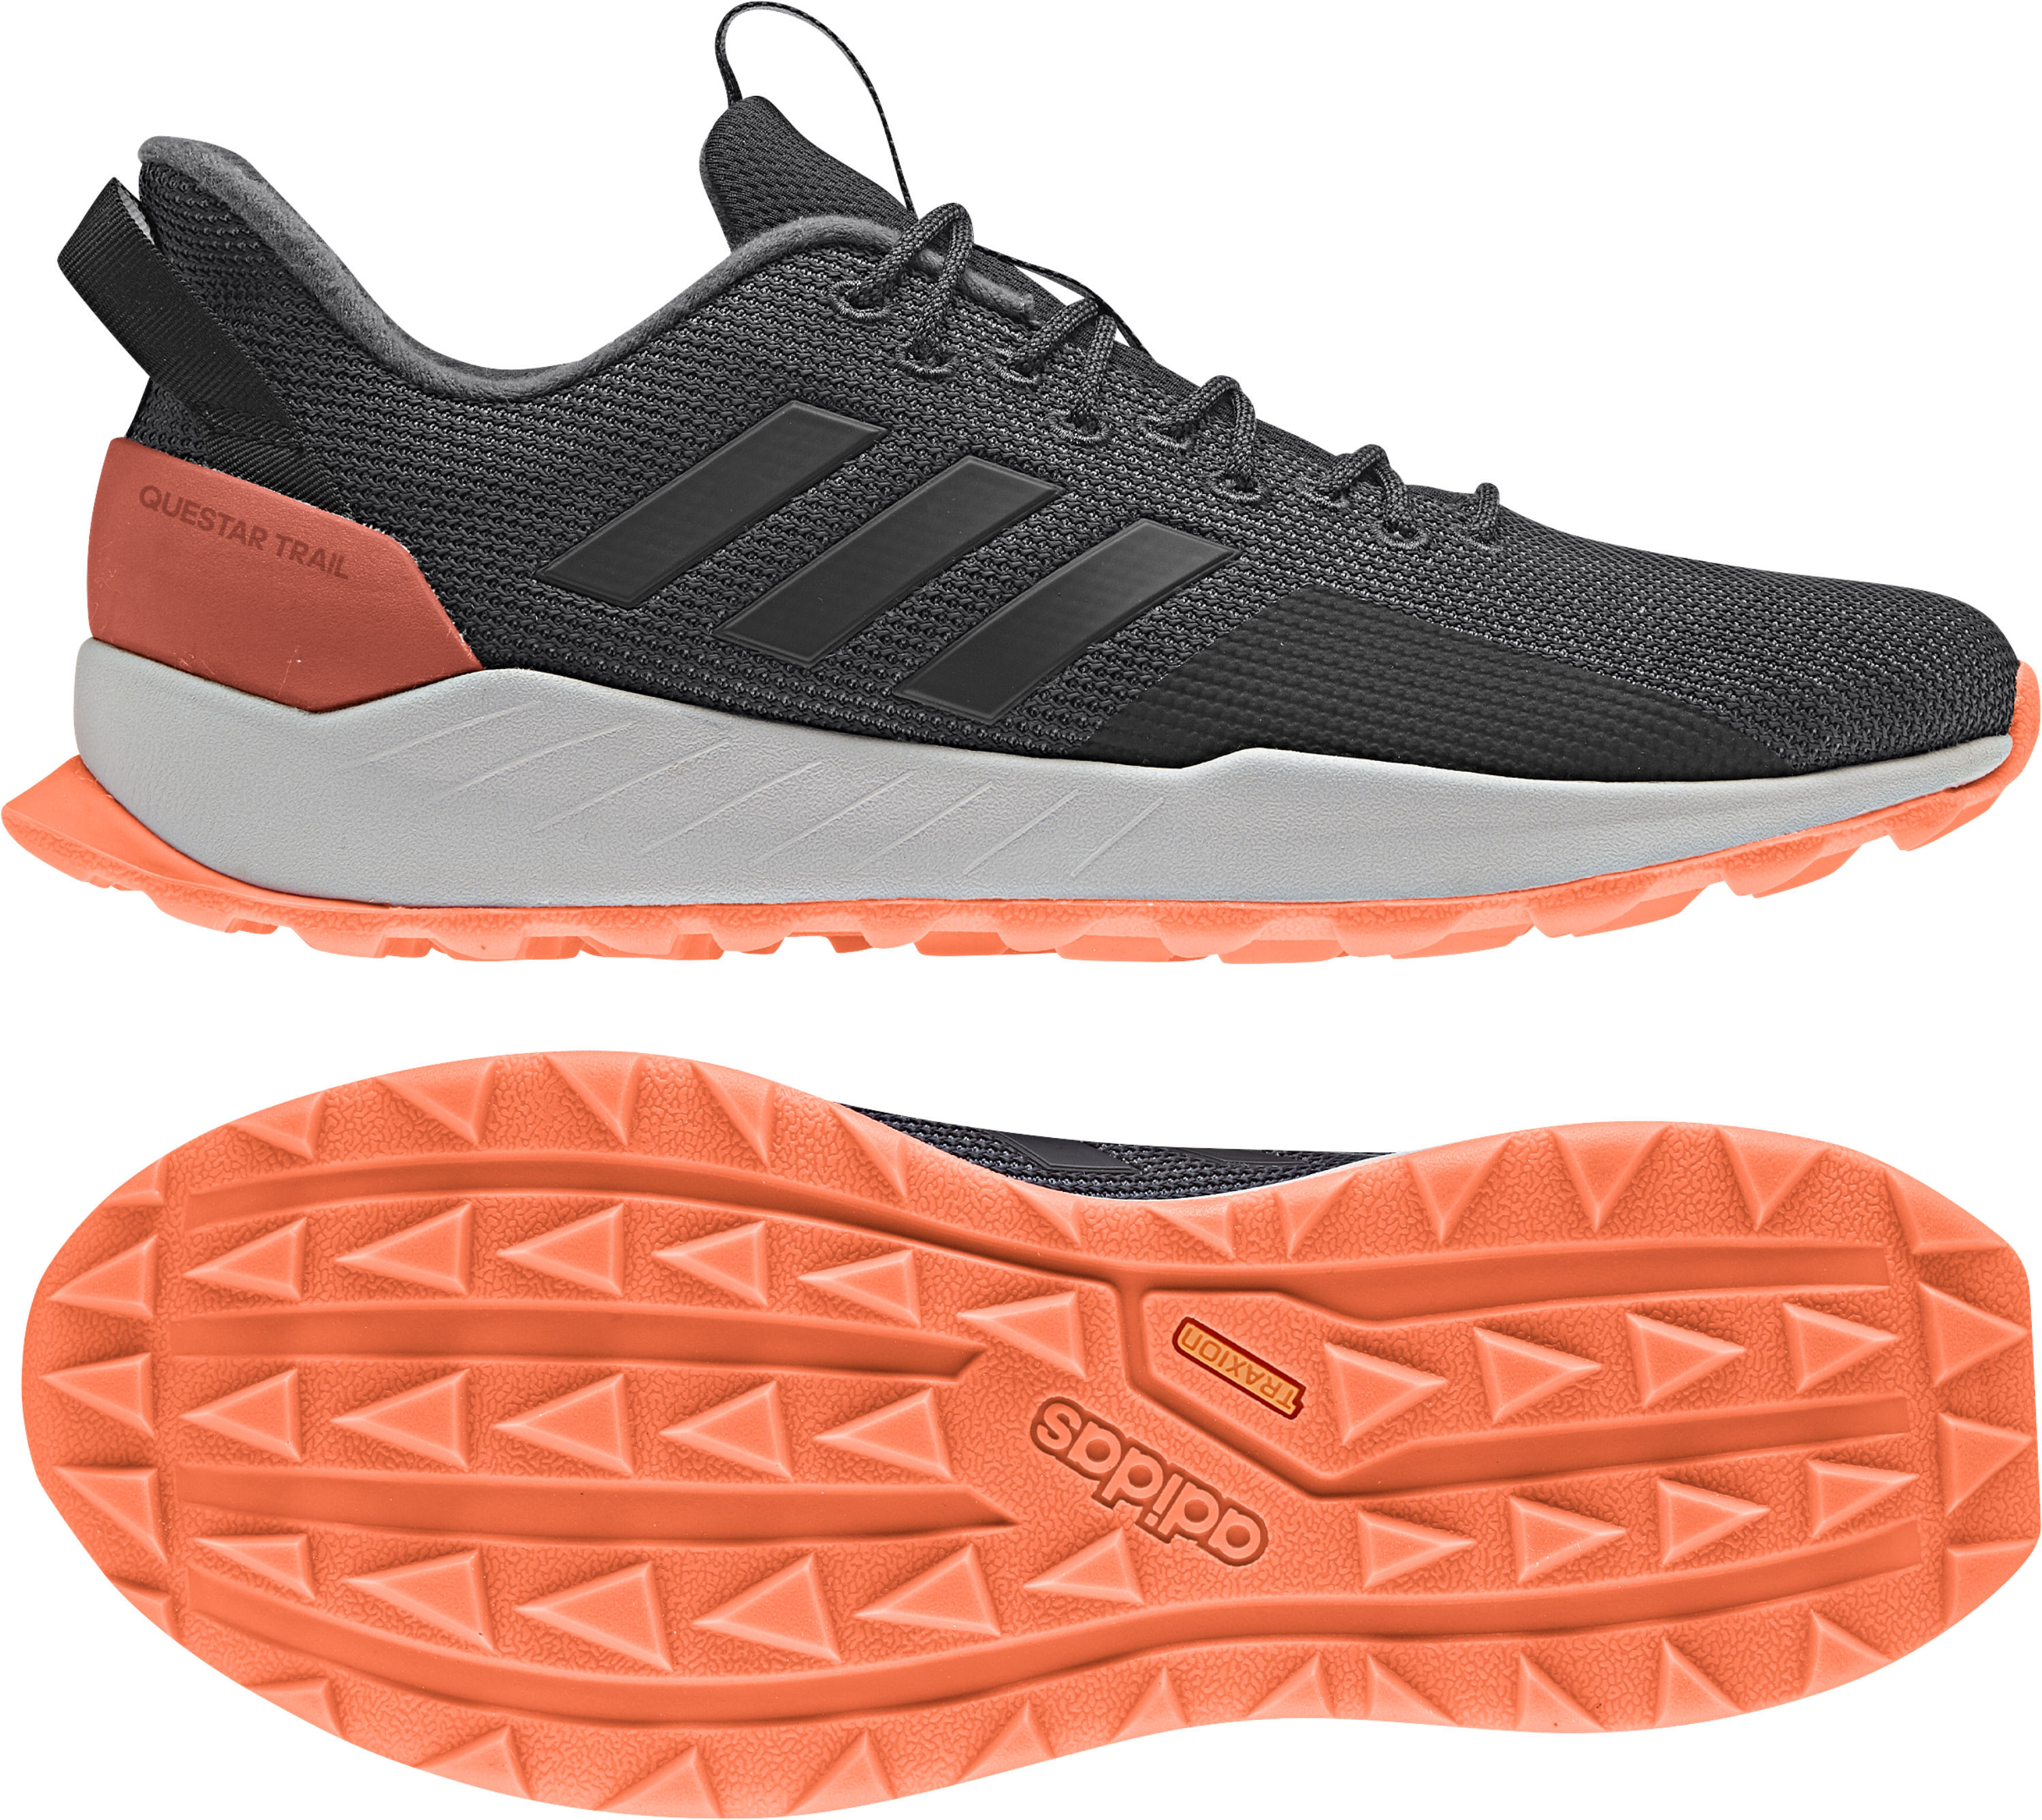 super popular d62bb cce19 Adidas Outdoor Questar Trail Running Shoe- Mens  Up to 41% Off Free  Shipping over 49!